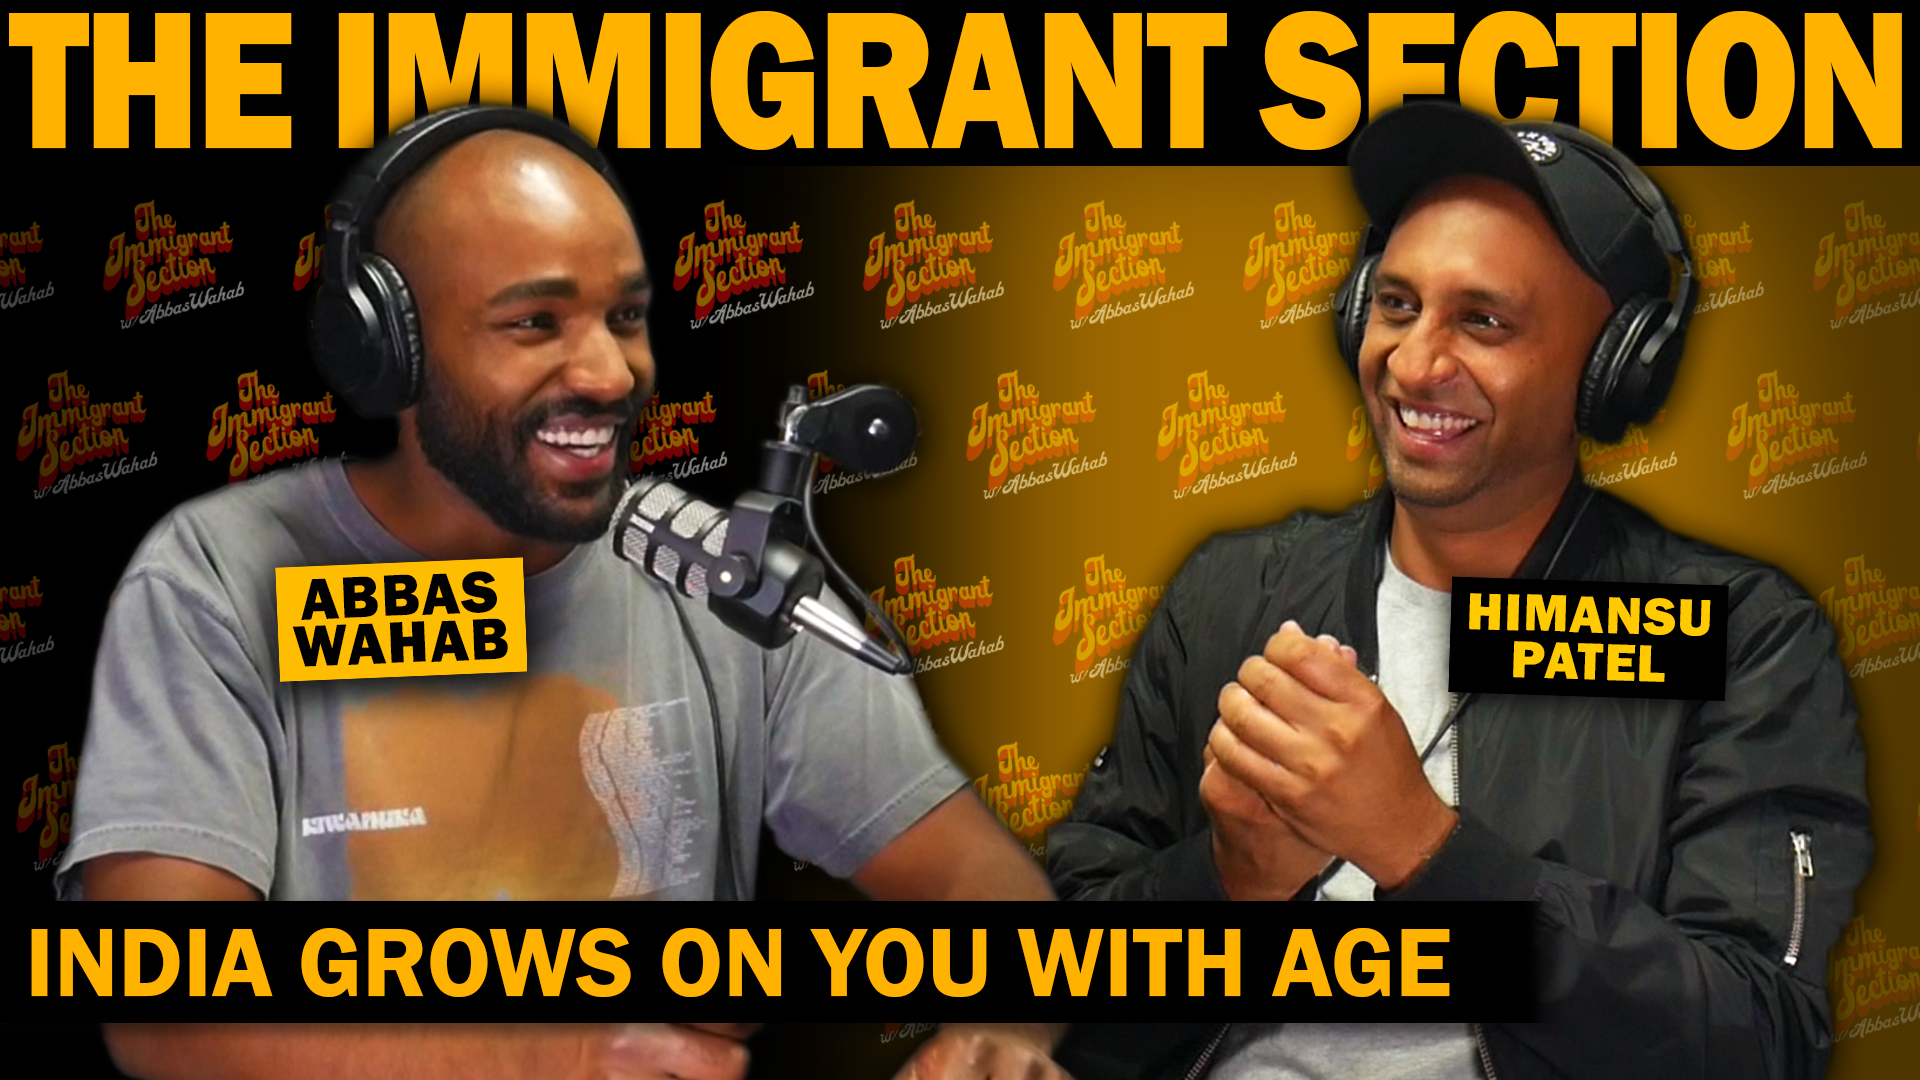 Everyone Will Eventually Look Filipino | The Immigrant Section with Abbas Wahab - 126